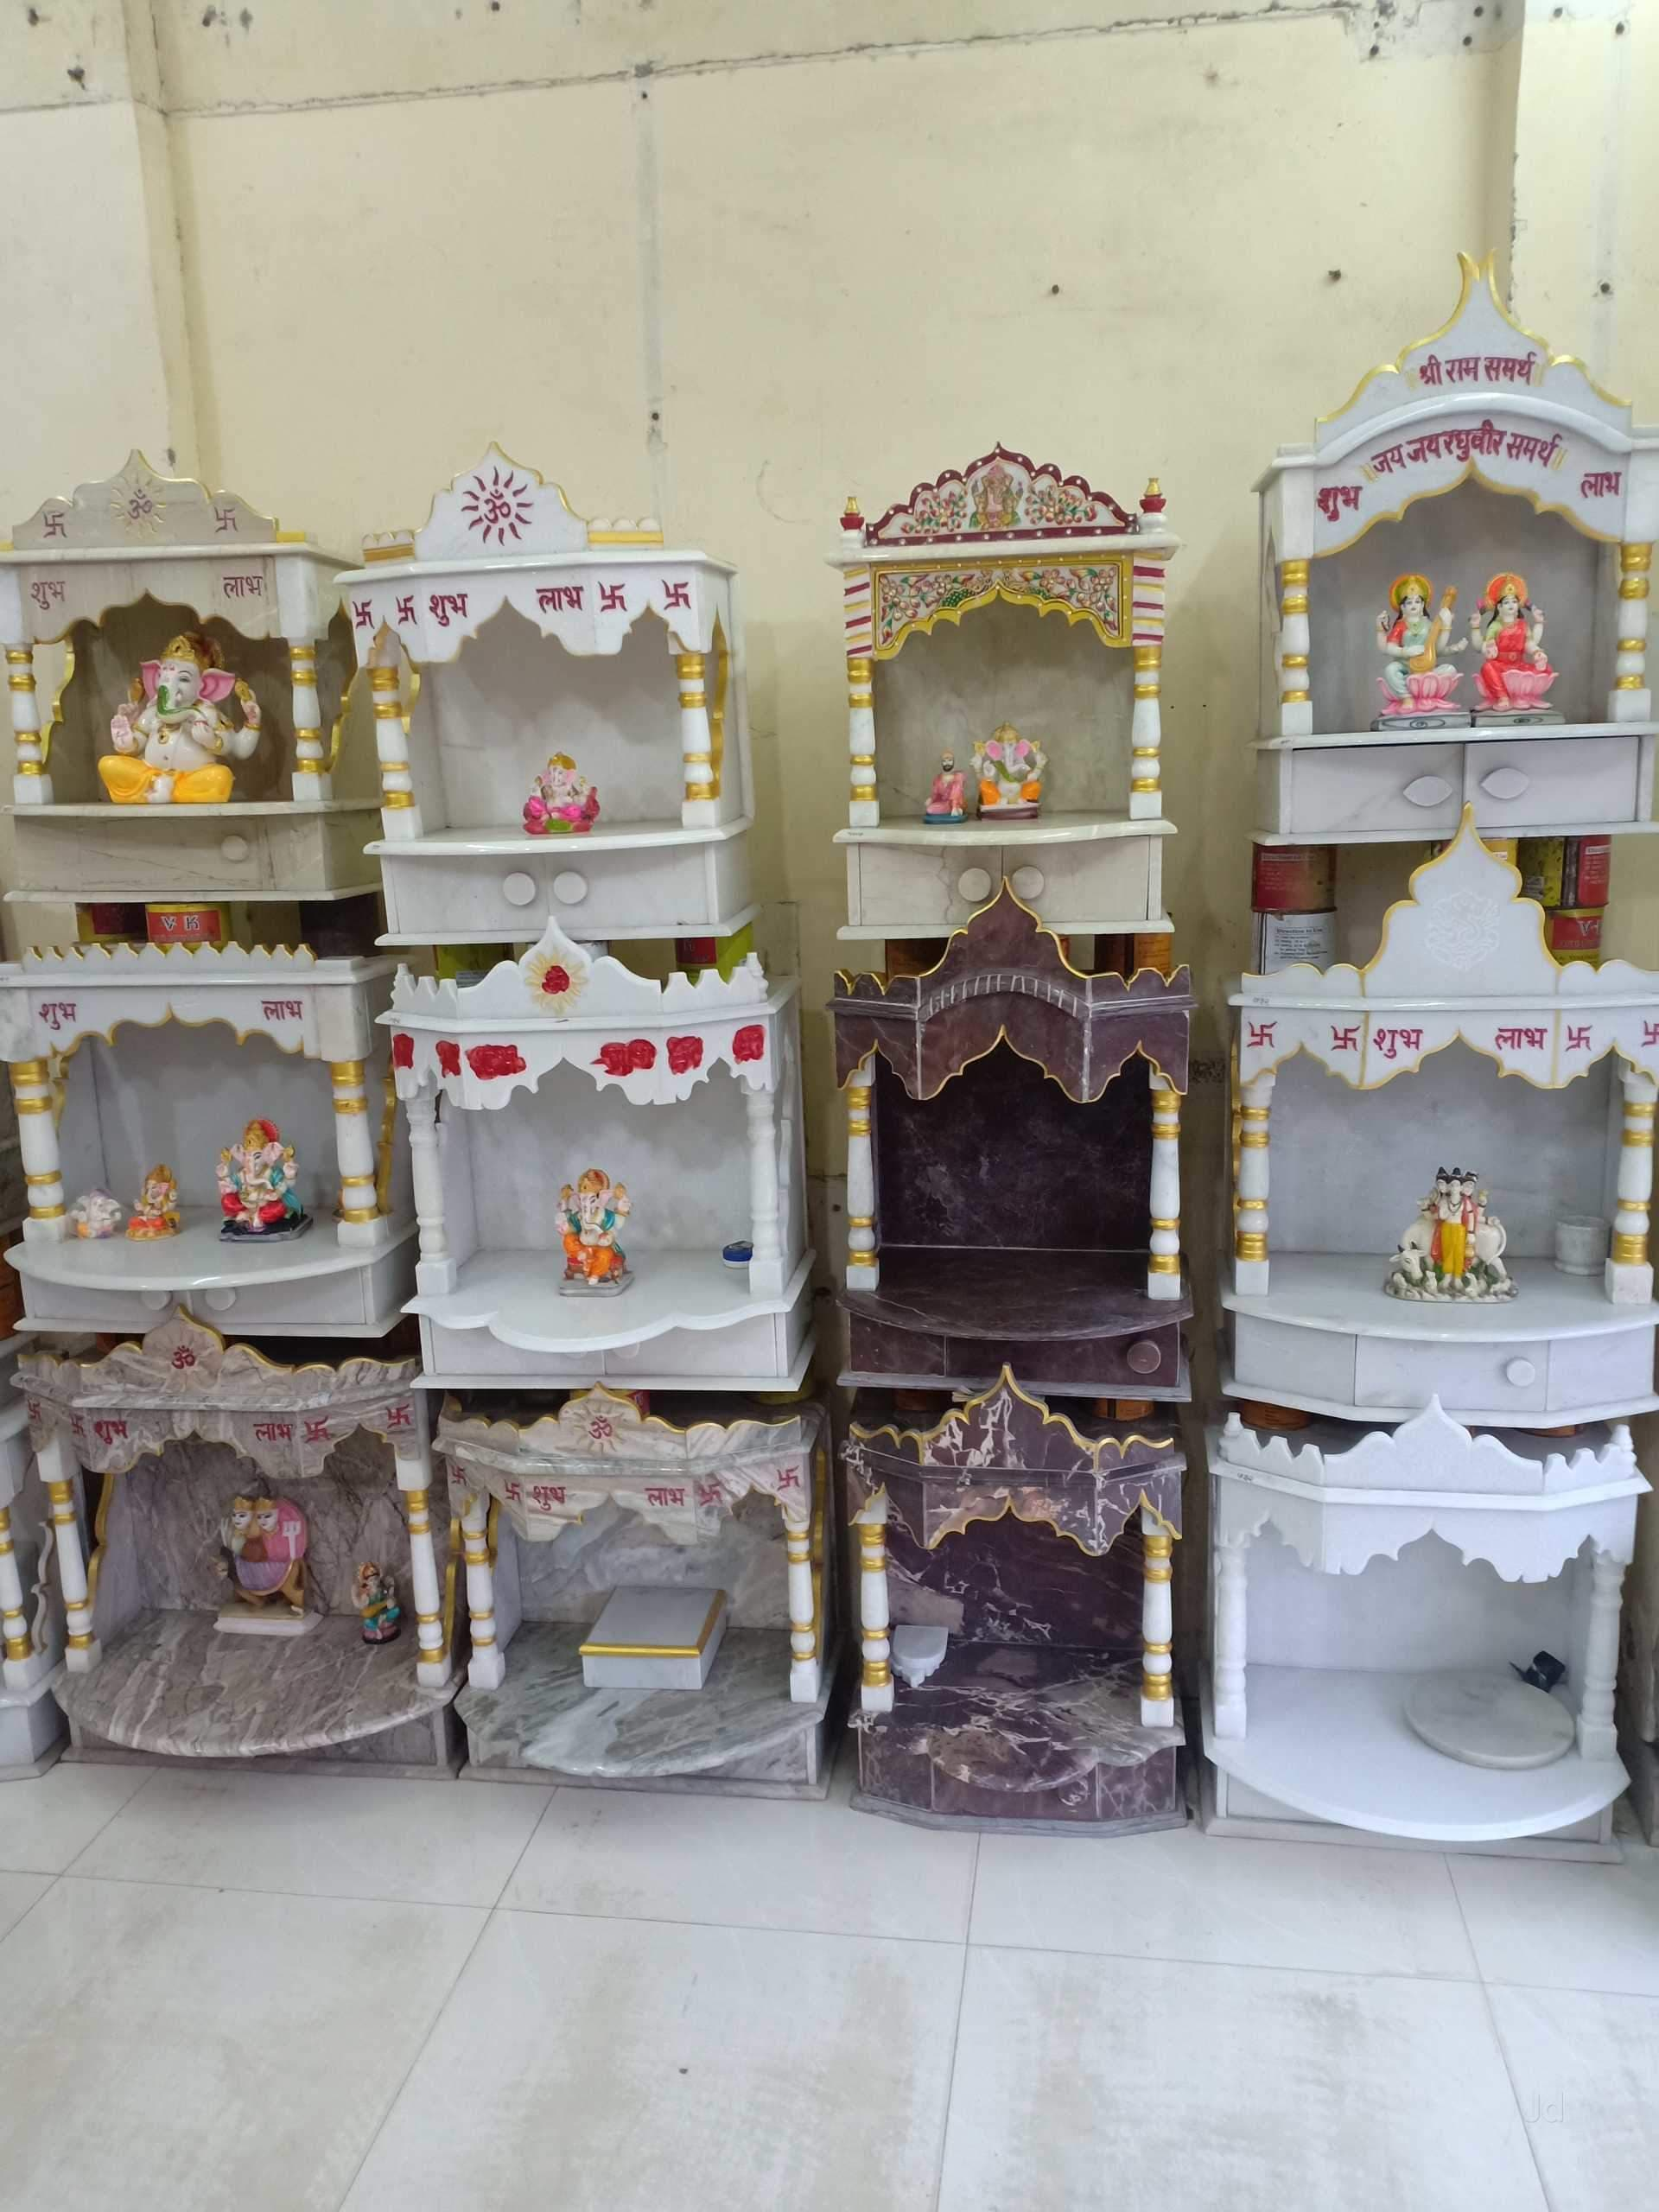 Top 100 Marble Temple Model Dealers in Mumbai - Best Marble Temple